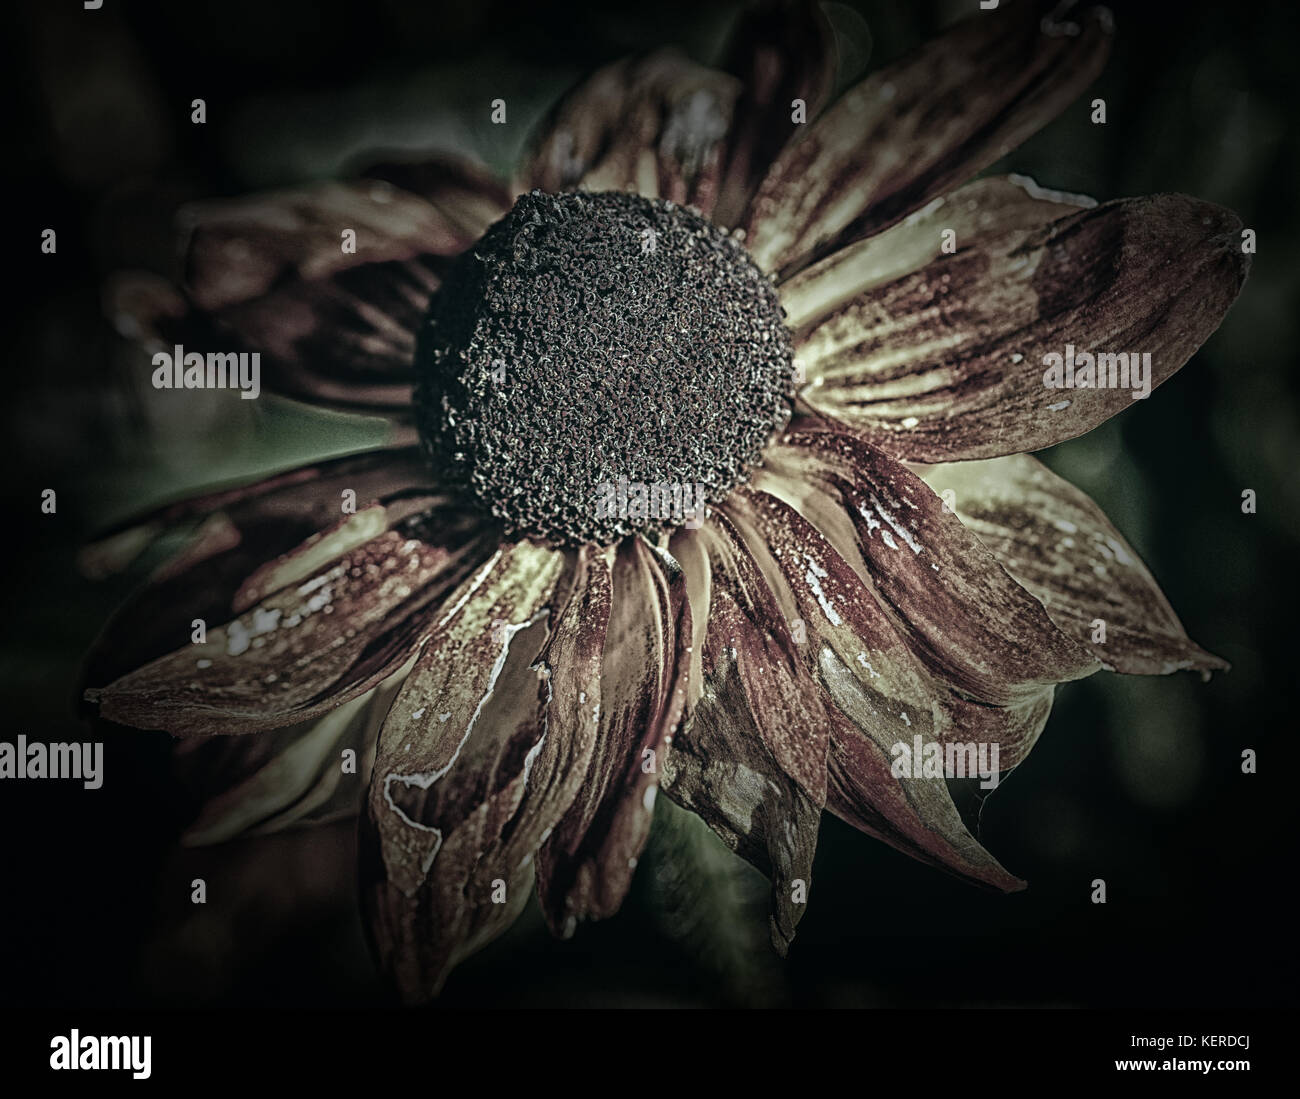 Evanescence shown by spent flowers - Stock Image